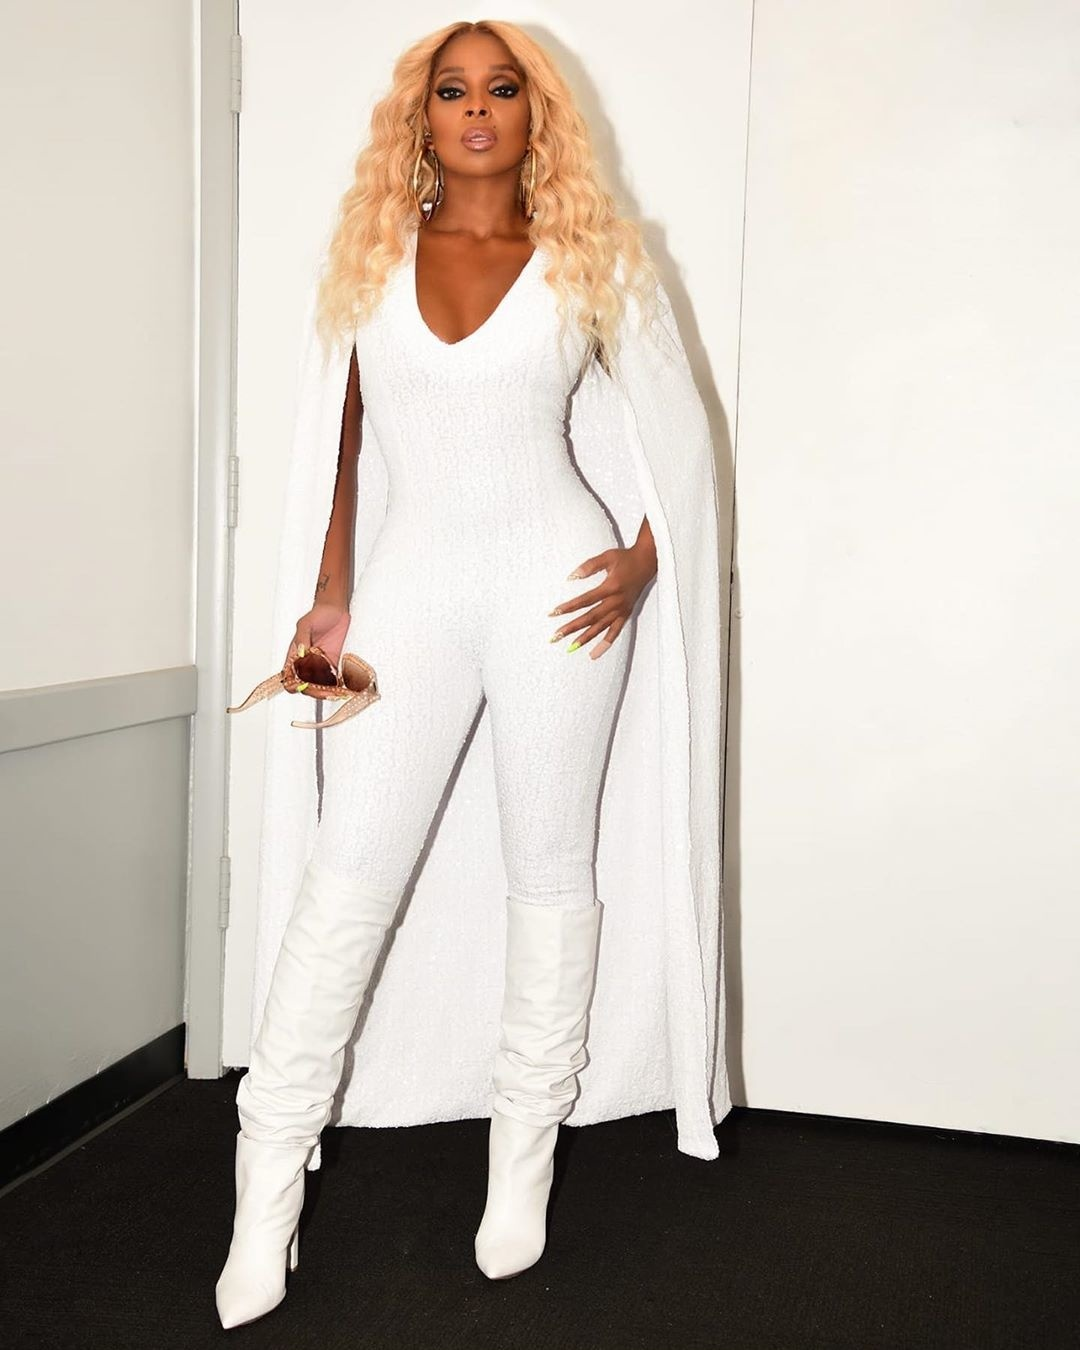 Mary J. Blige Reportedly Owes More Than $1 Million In Back Taxes